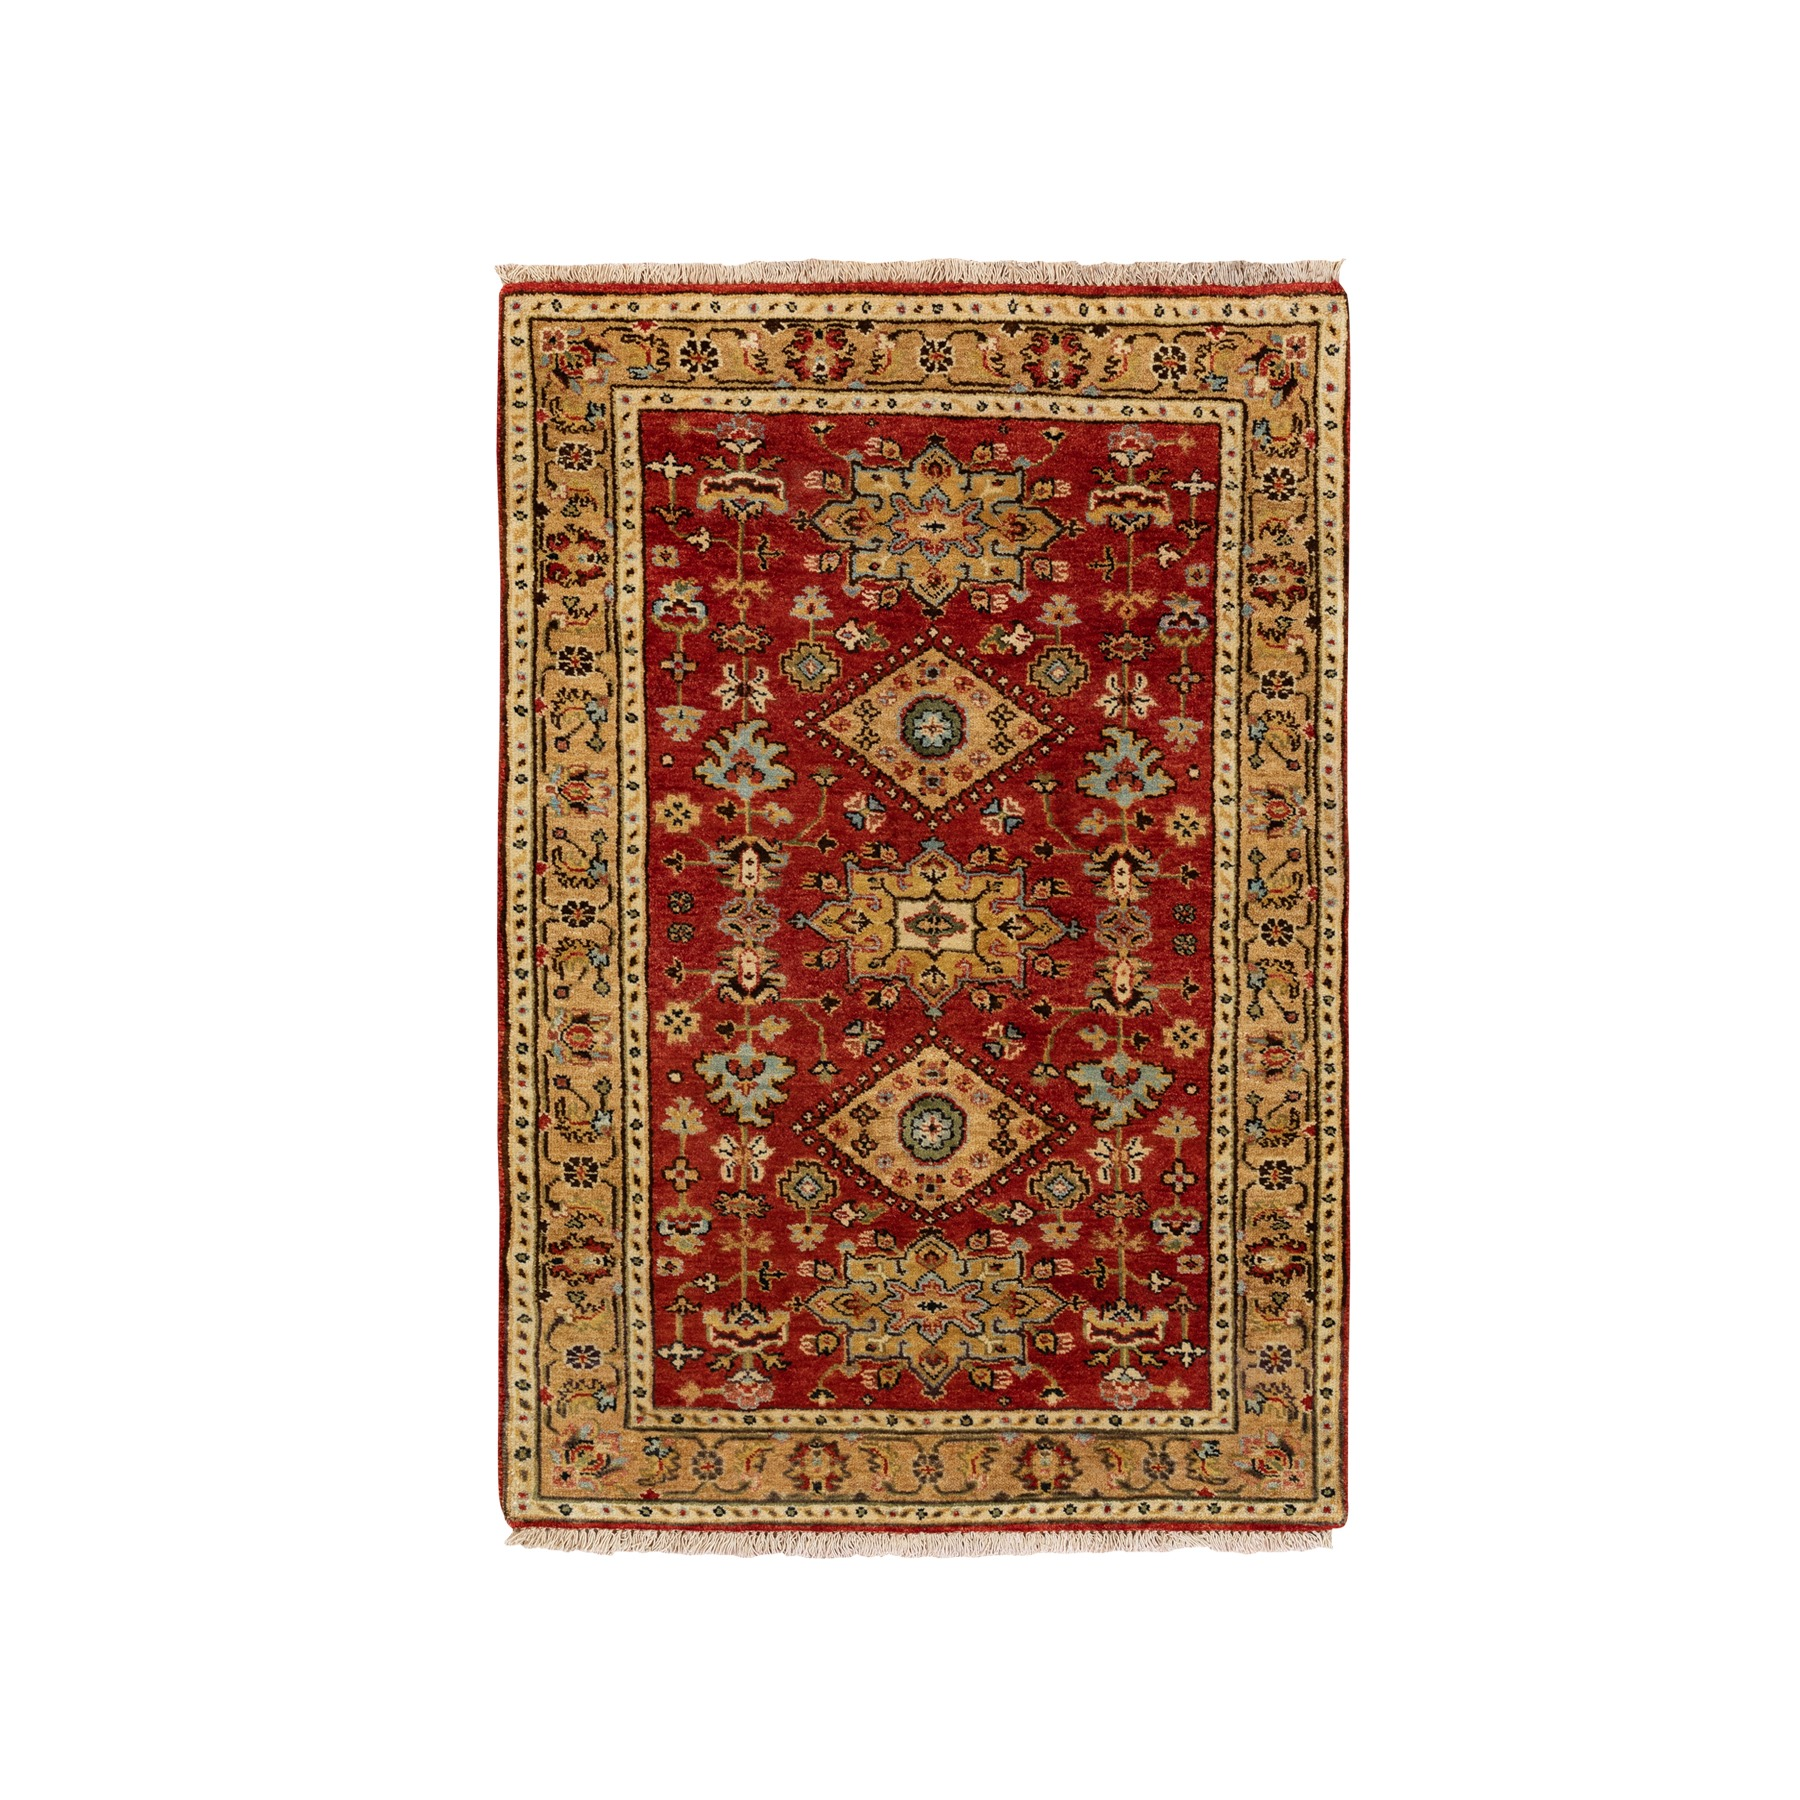 3'x5' Red Pure Wool Karajeh Design Hand Knotted Oriental Rug